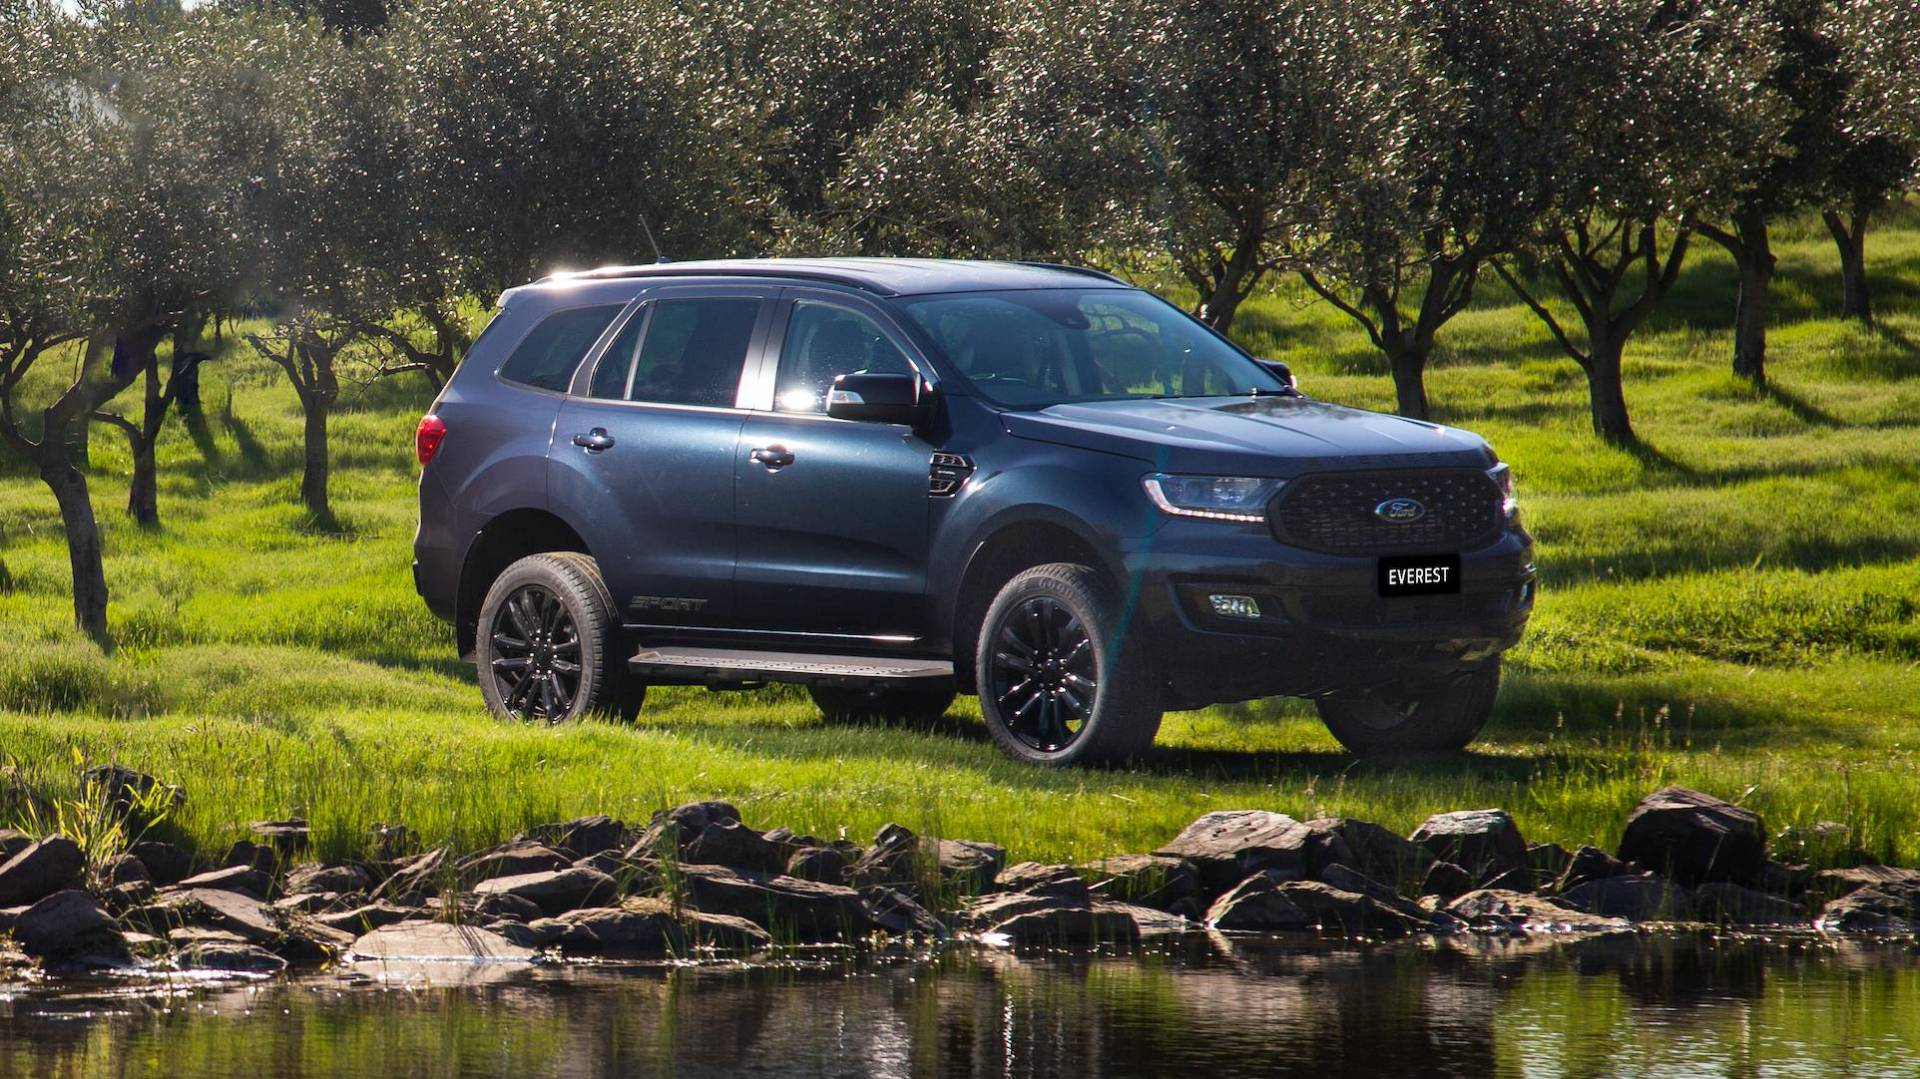 2020-ford-everest-sport-australia-spec-1.jpg